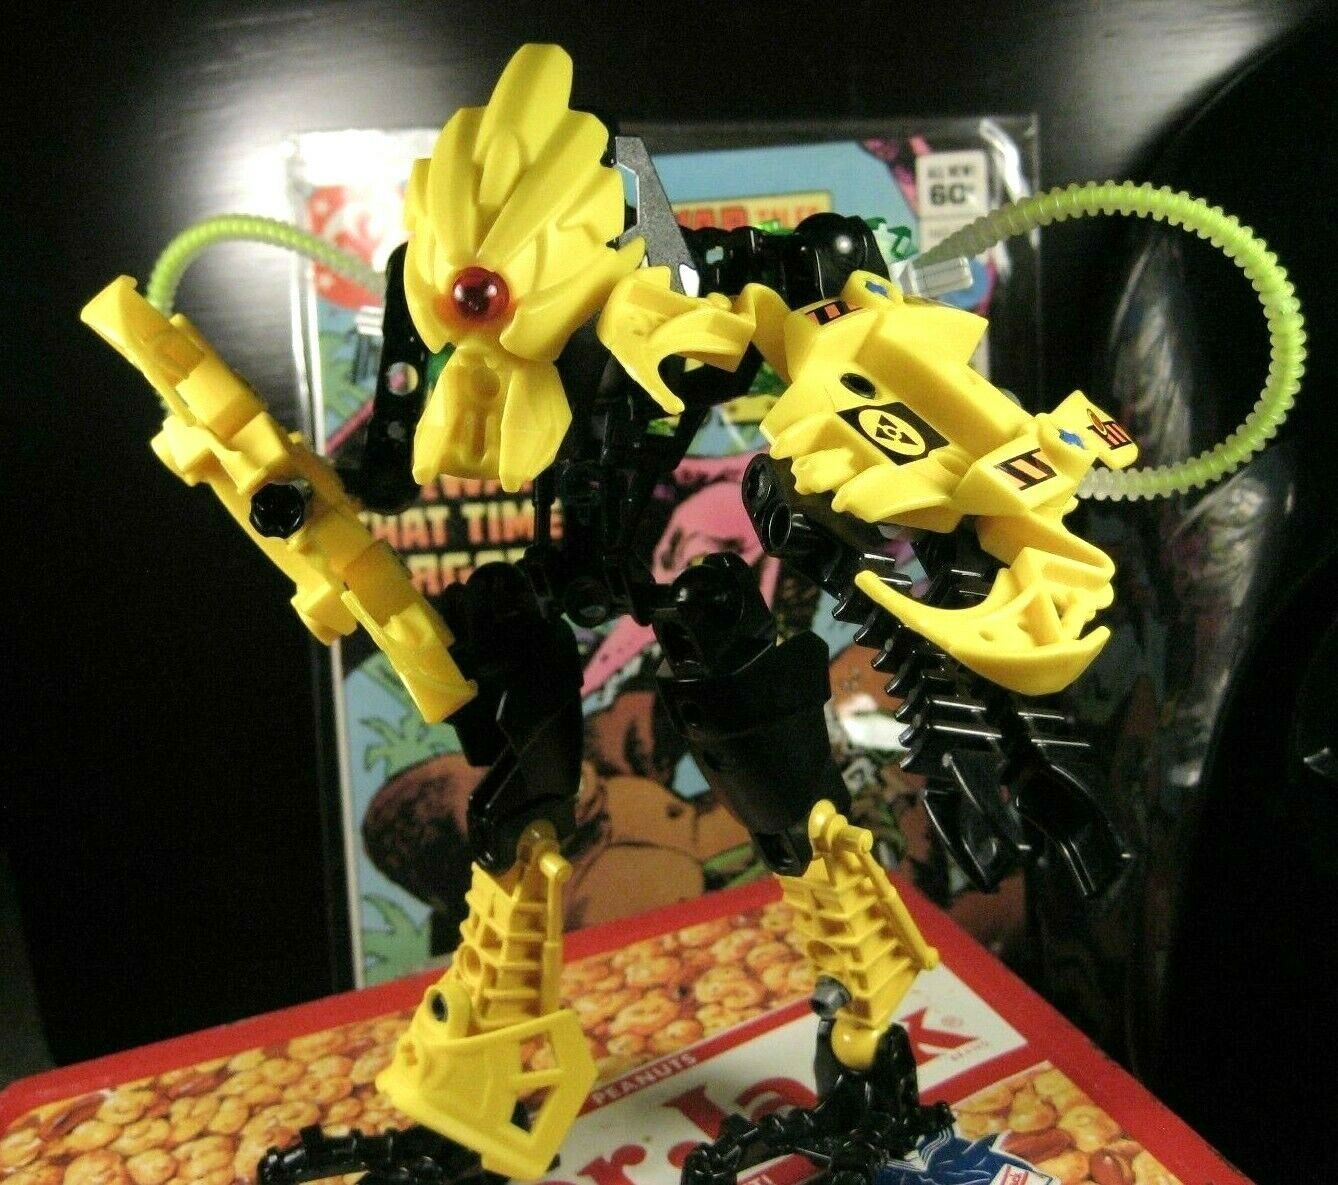 Rare LEGO Bionicle Toxic Hero Factory Meltdown Buildable Figure Toy 7148